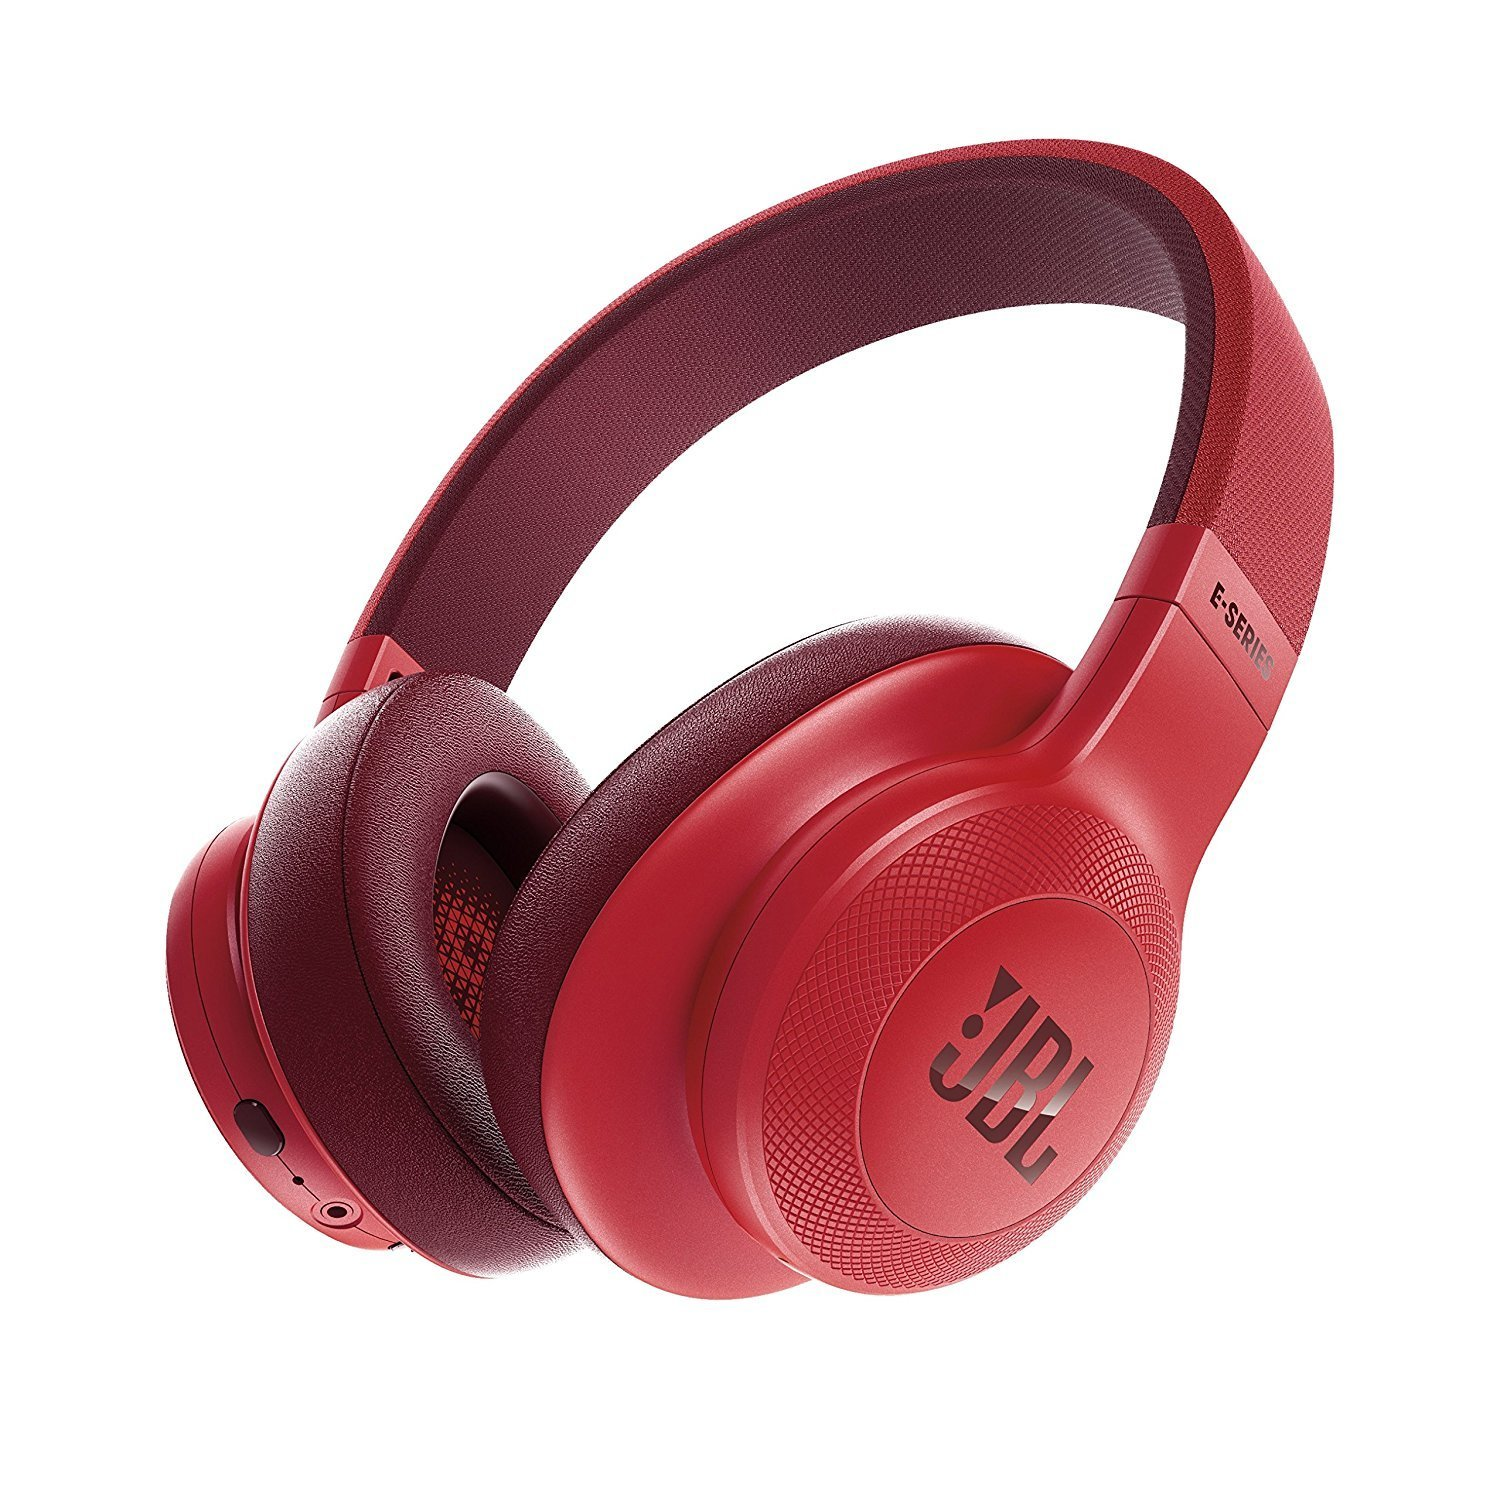 JBL E55BT Bluetooth Over-Ear Headphones with Mic, Red